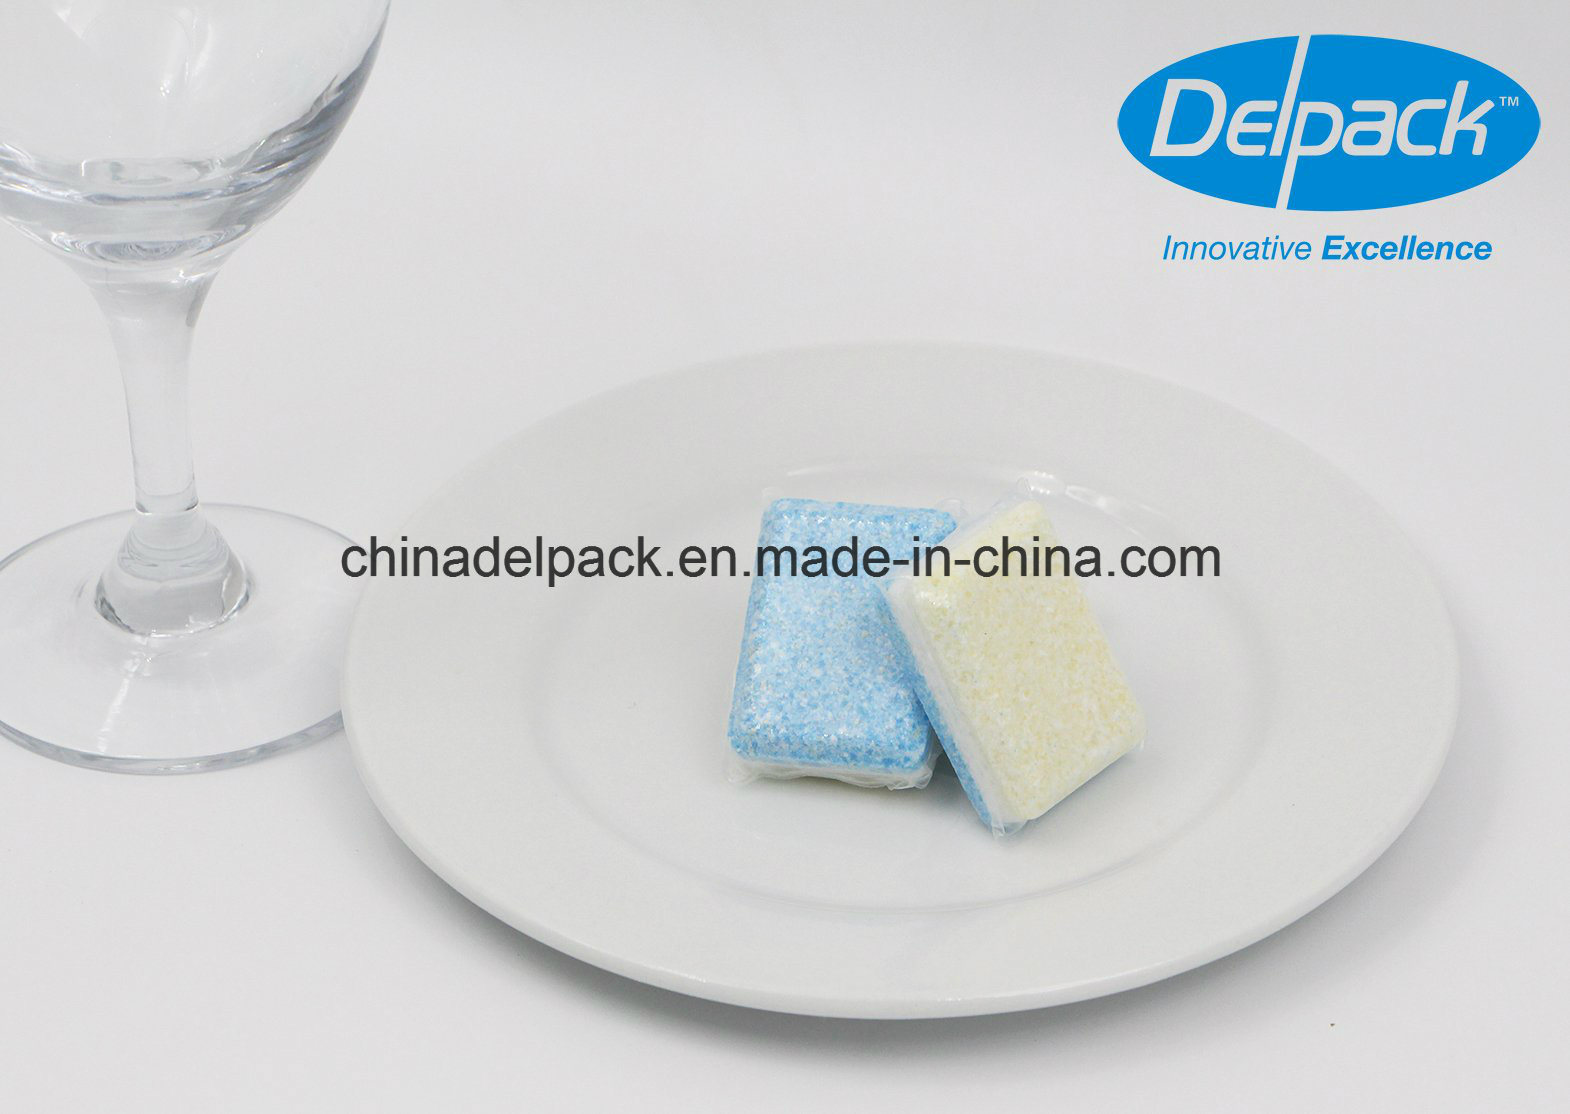 OEM&ODM Phosphate Free and Lemon Fragrance Dishwashing Detergent Tablets, New Formula Dishwashing Detergent Tablets